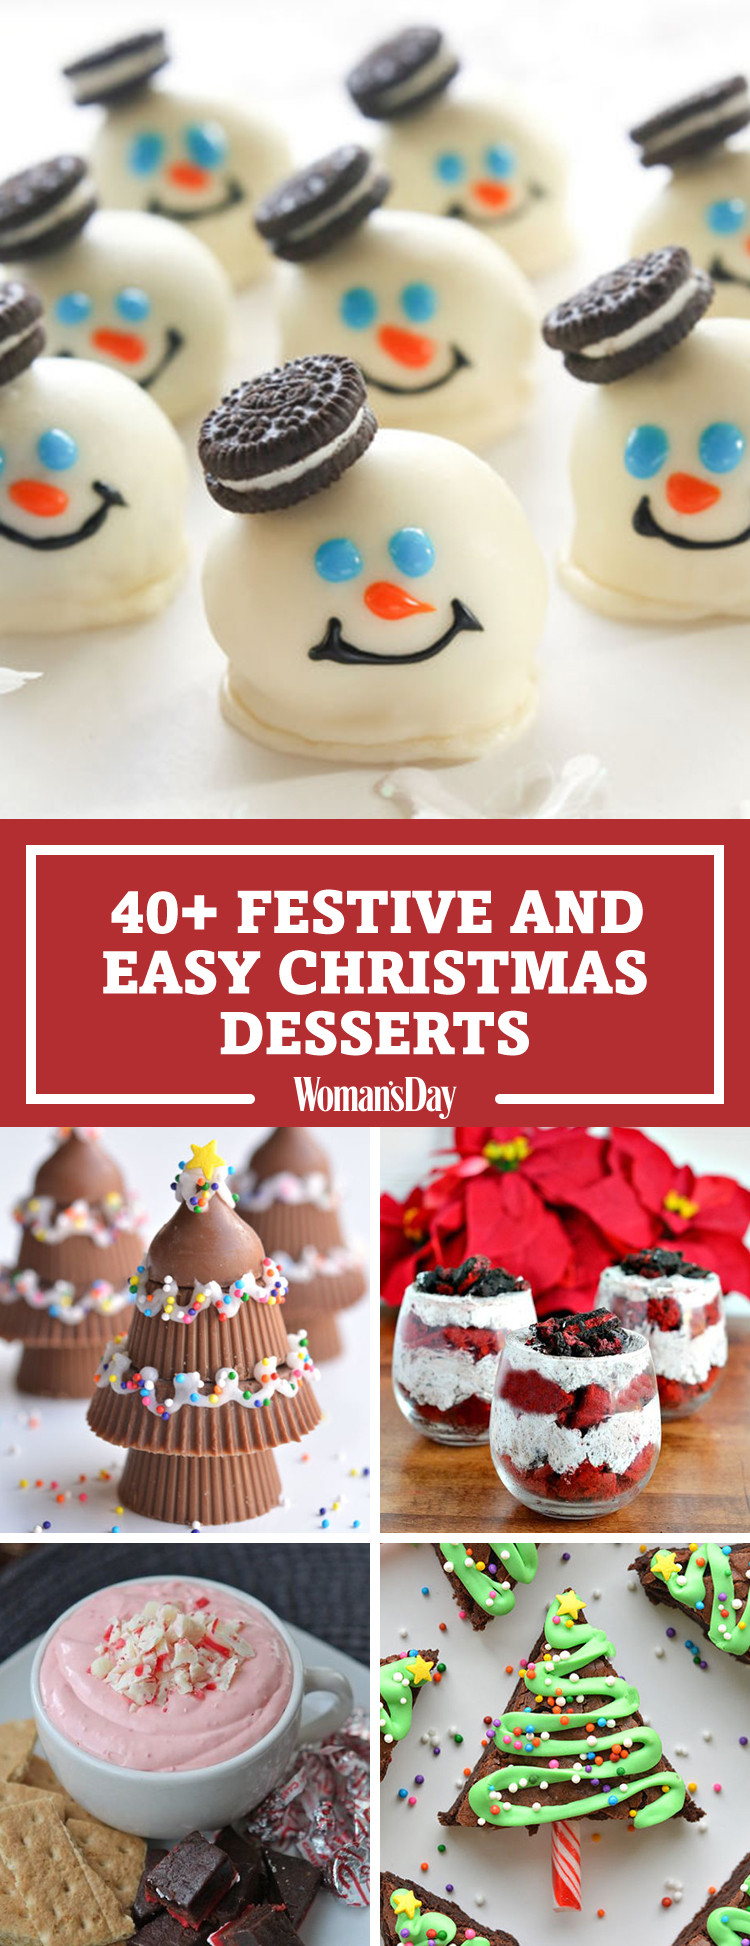 Easy Christmas Party Desserts  57 Easy Christmas Dessert Recipes Best Ideas for Fun